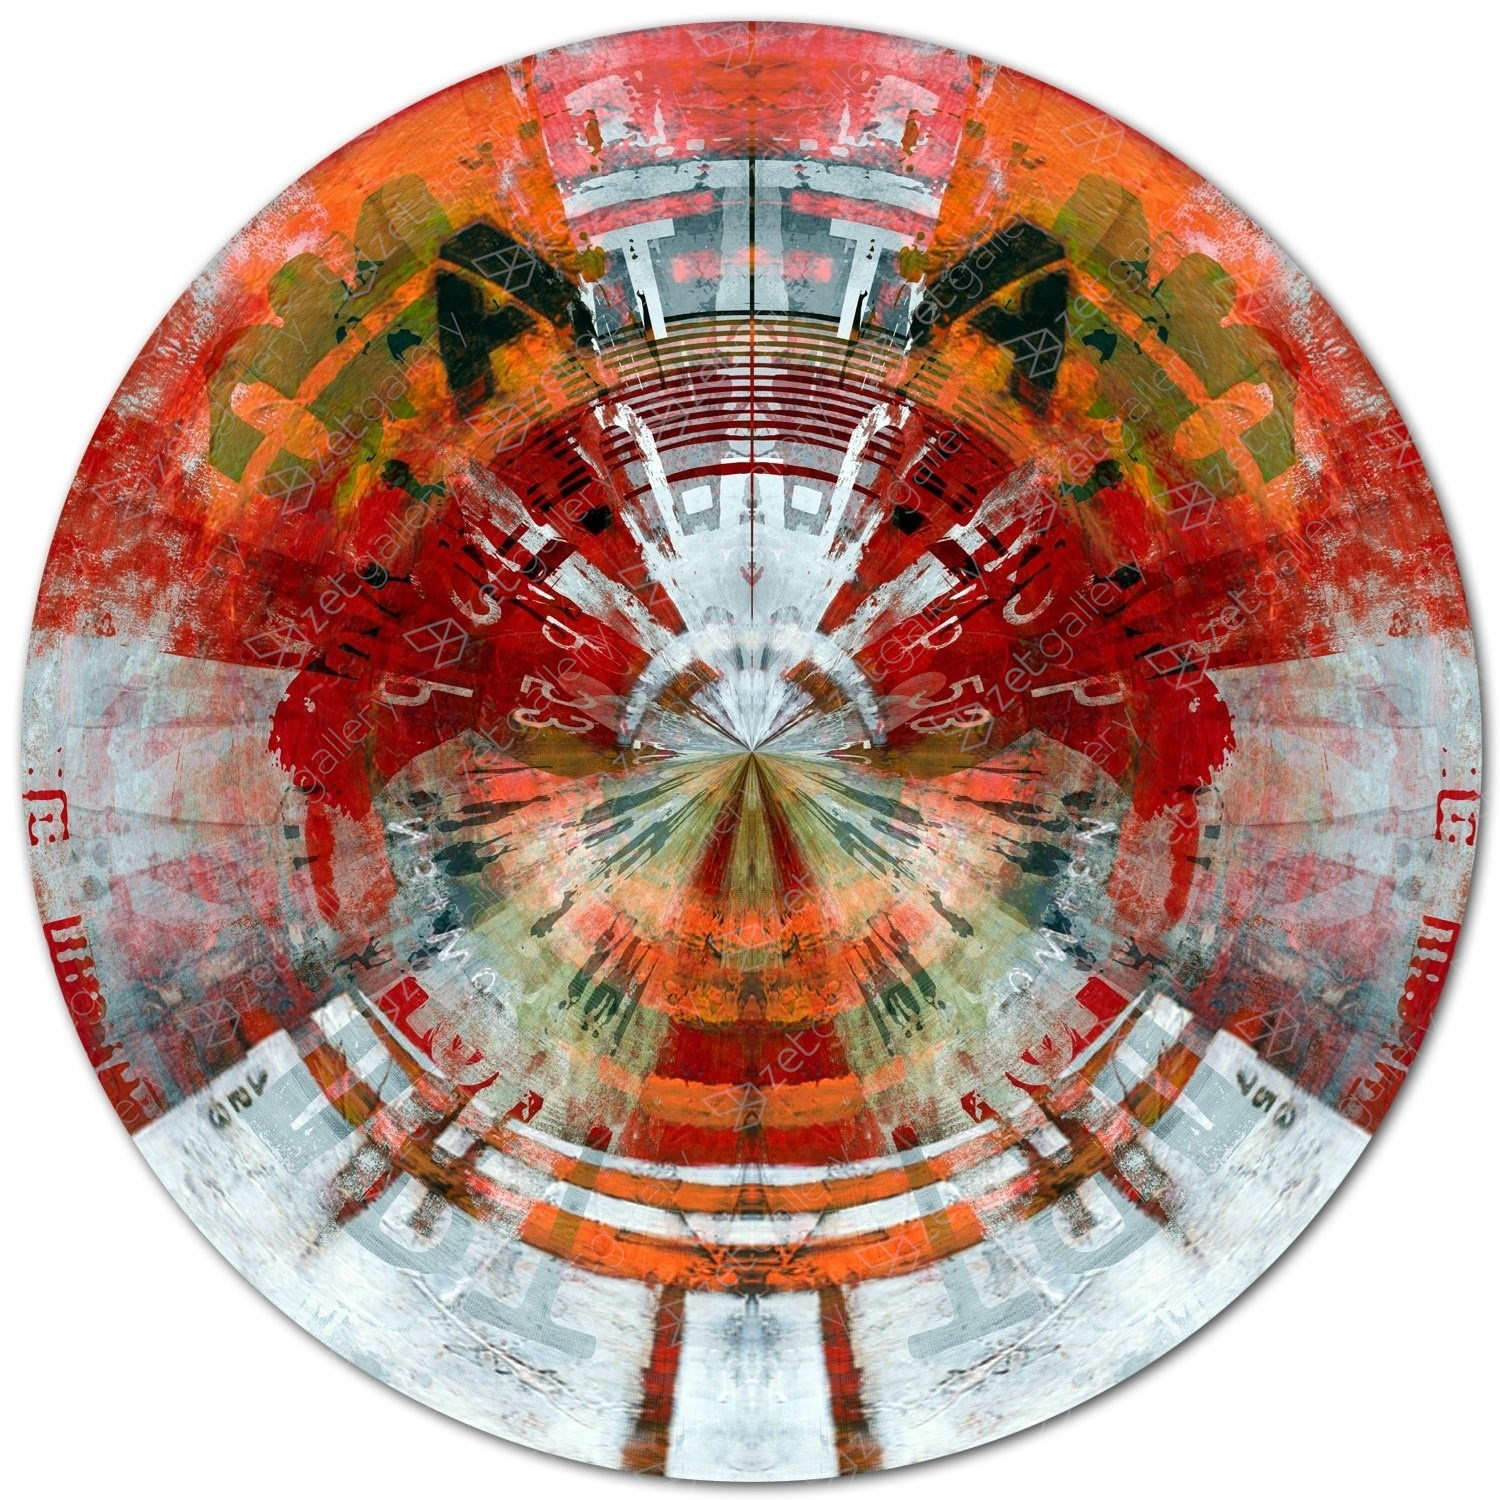 CIRCULAR 66, original Abstract Digital Photography by Sven Pfrommer